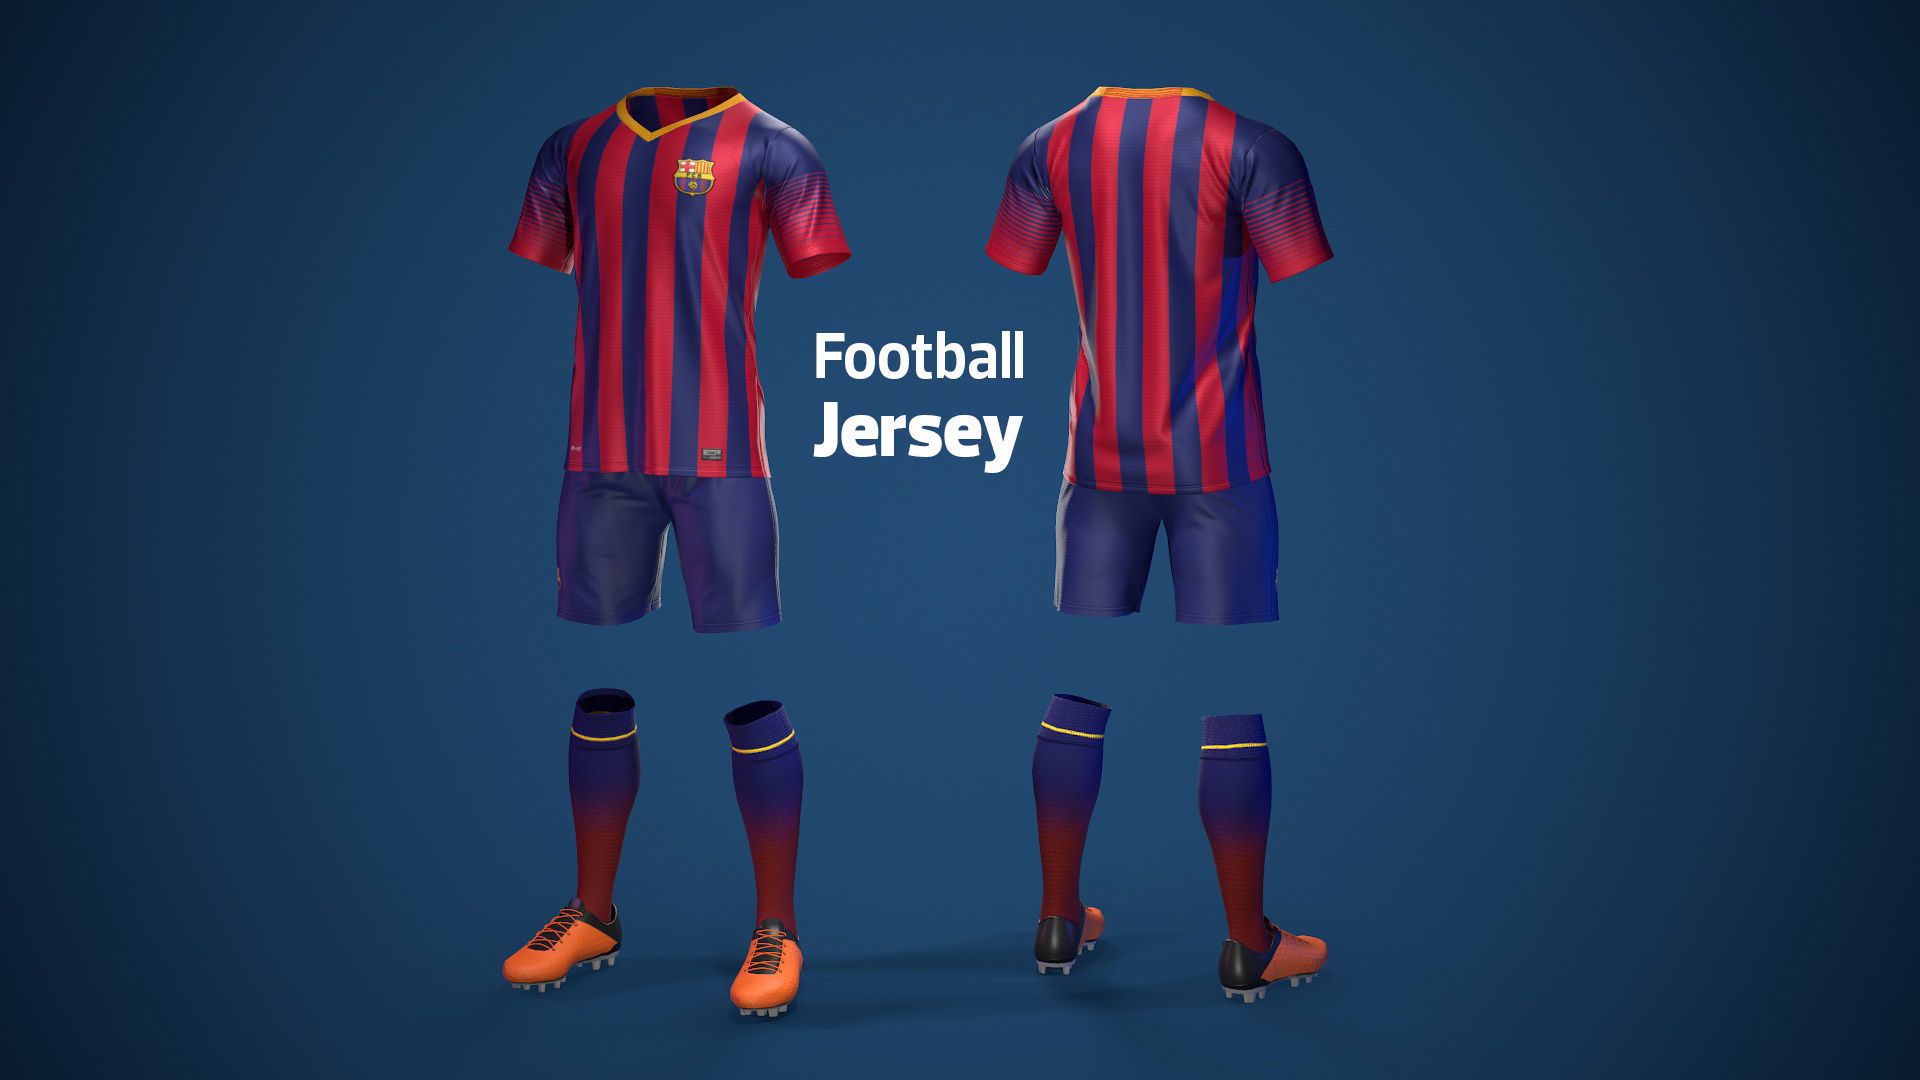 Football Jersey full outfit Barcelona Team